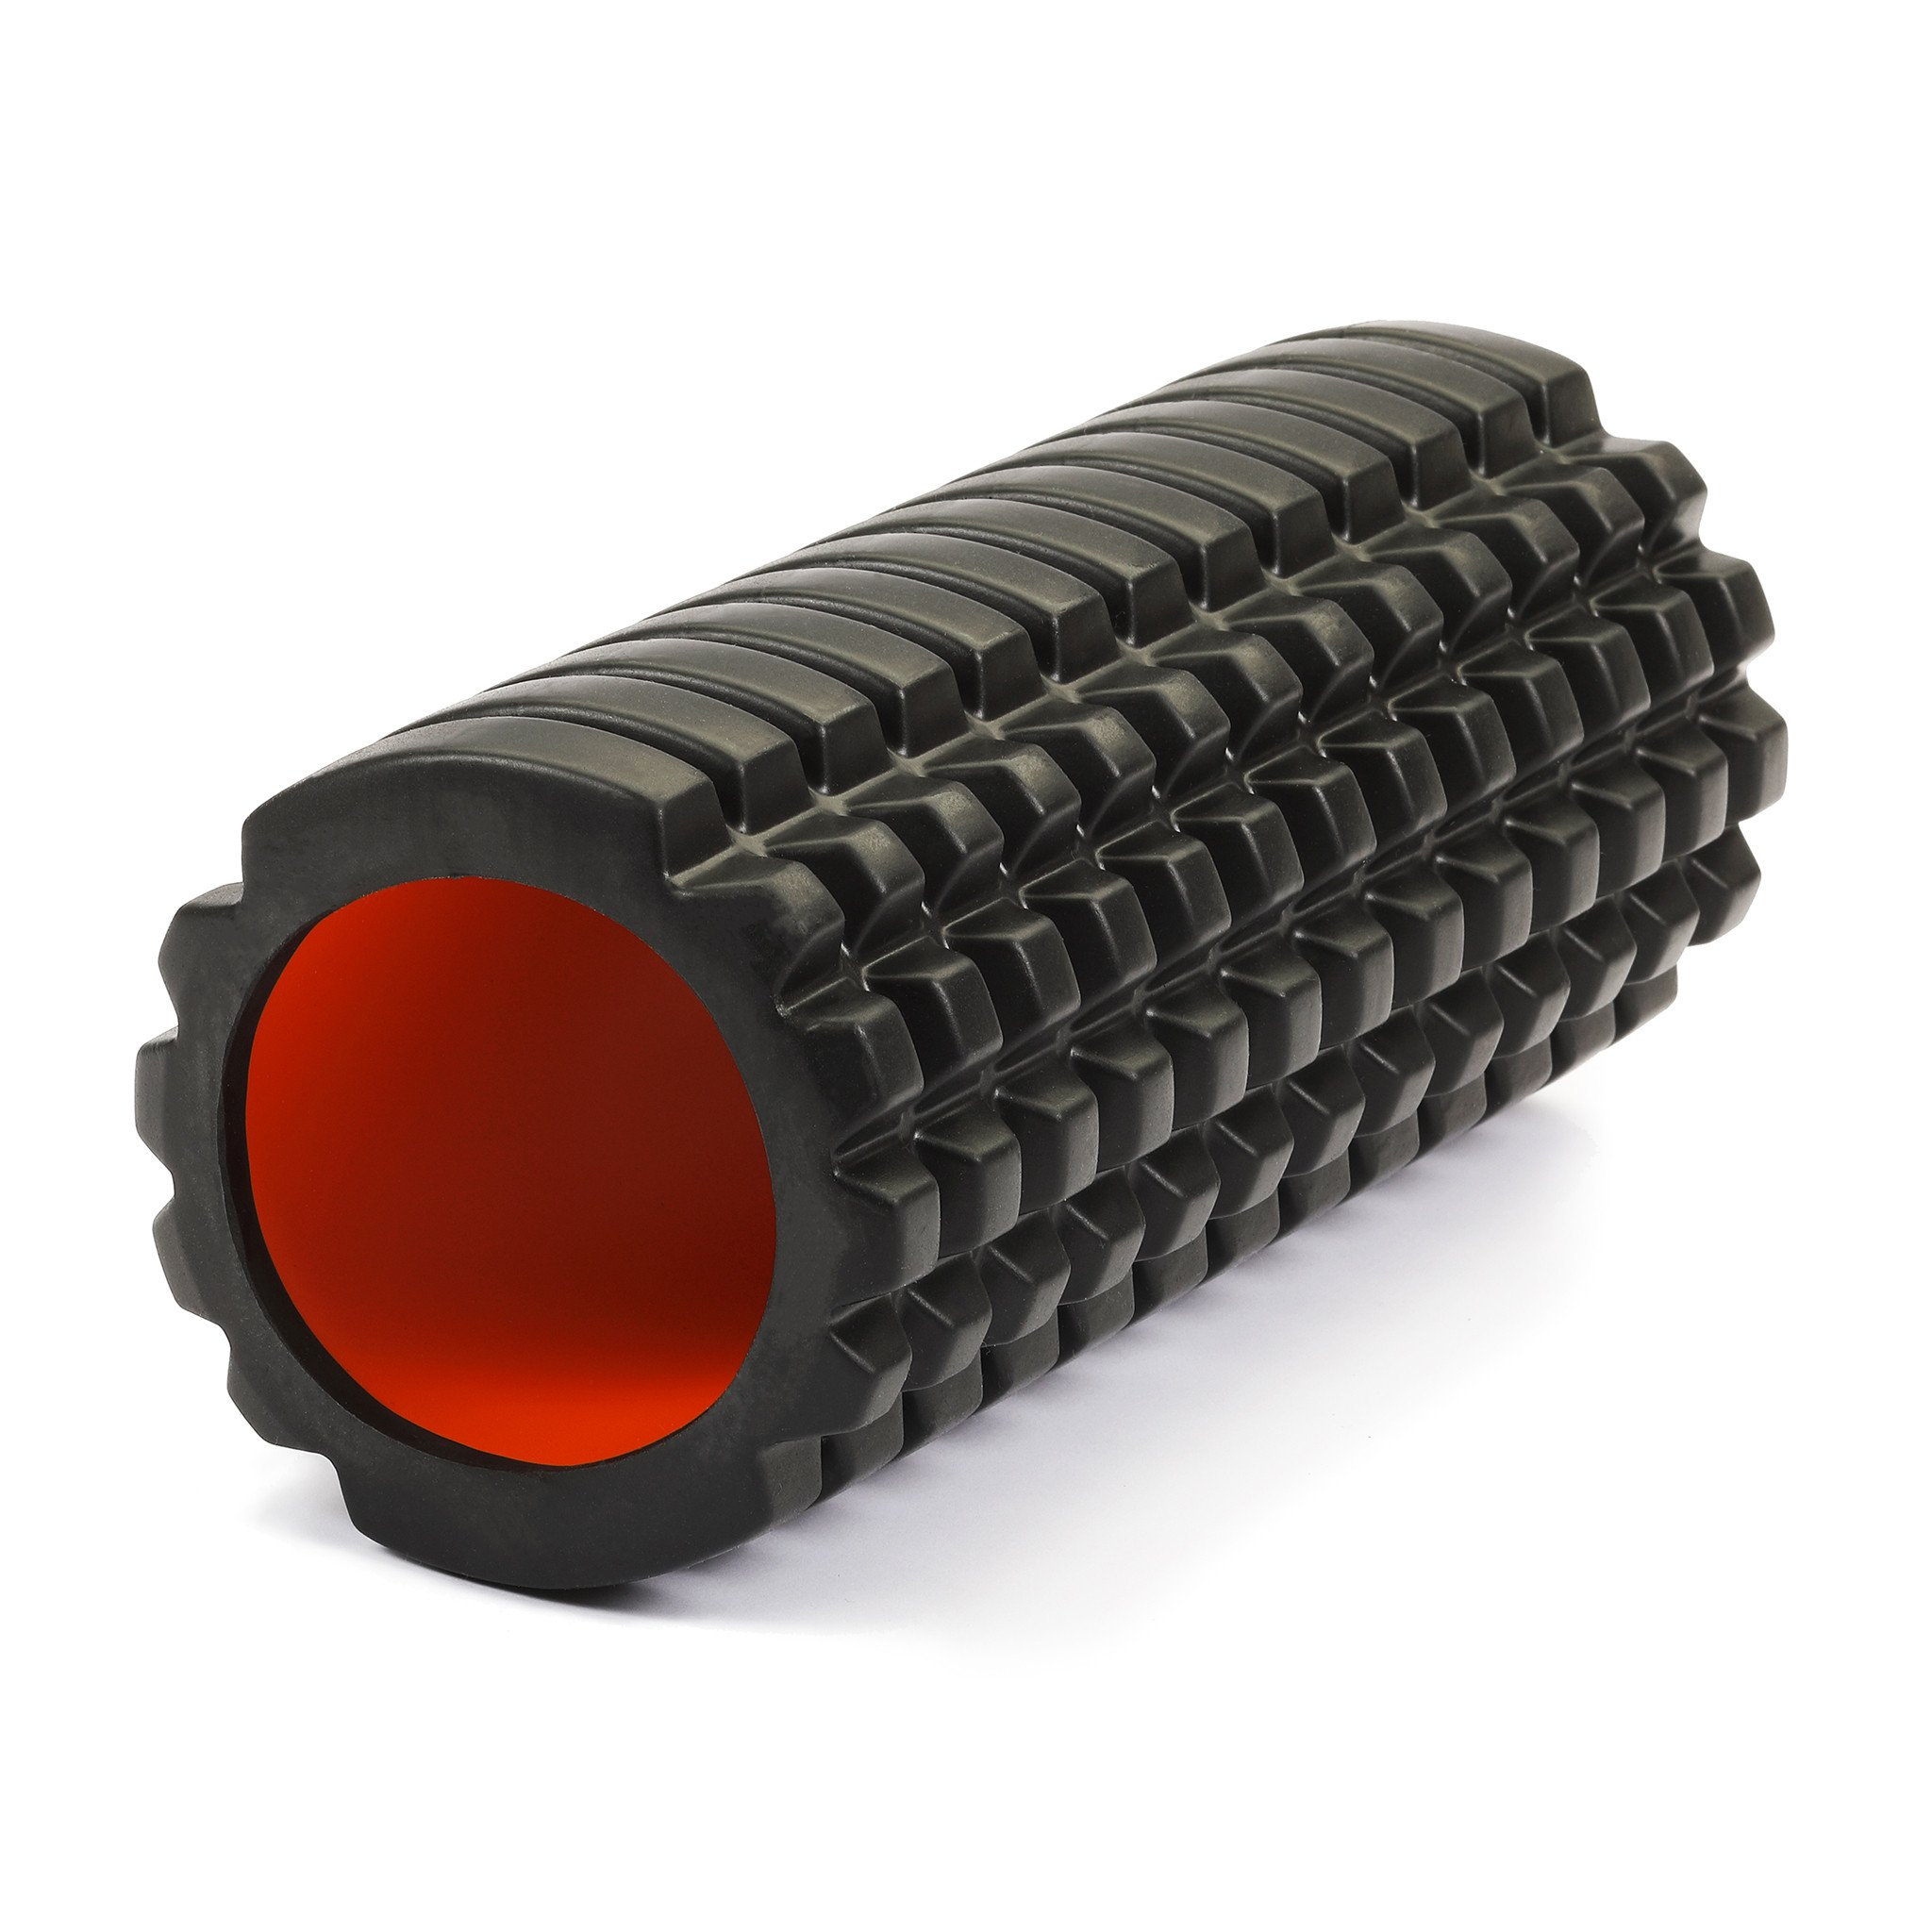 Foam Roller for Physical Therapy & Massage